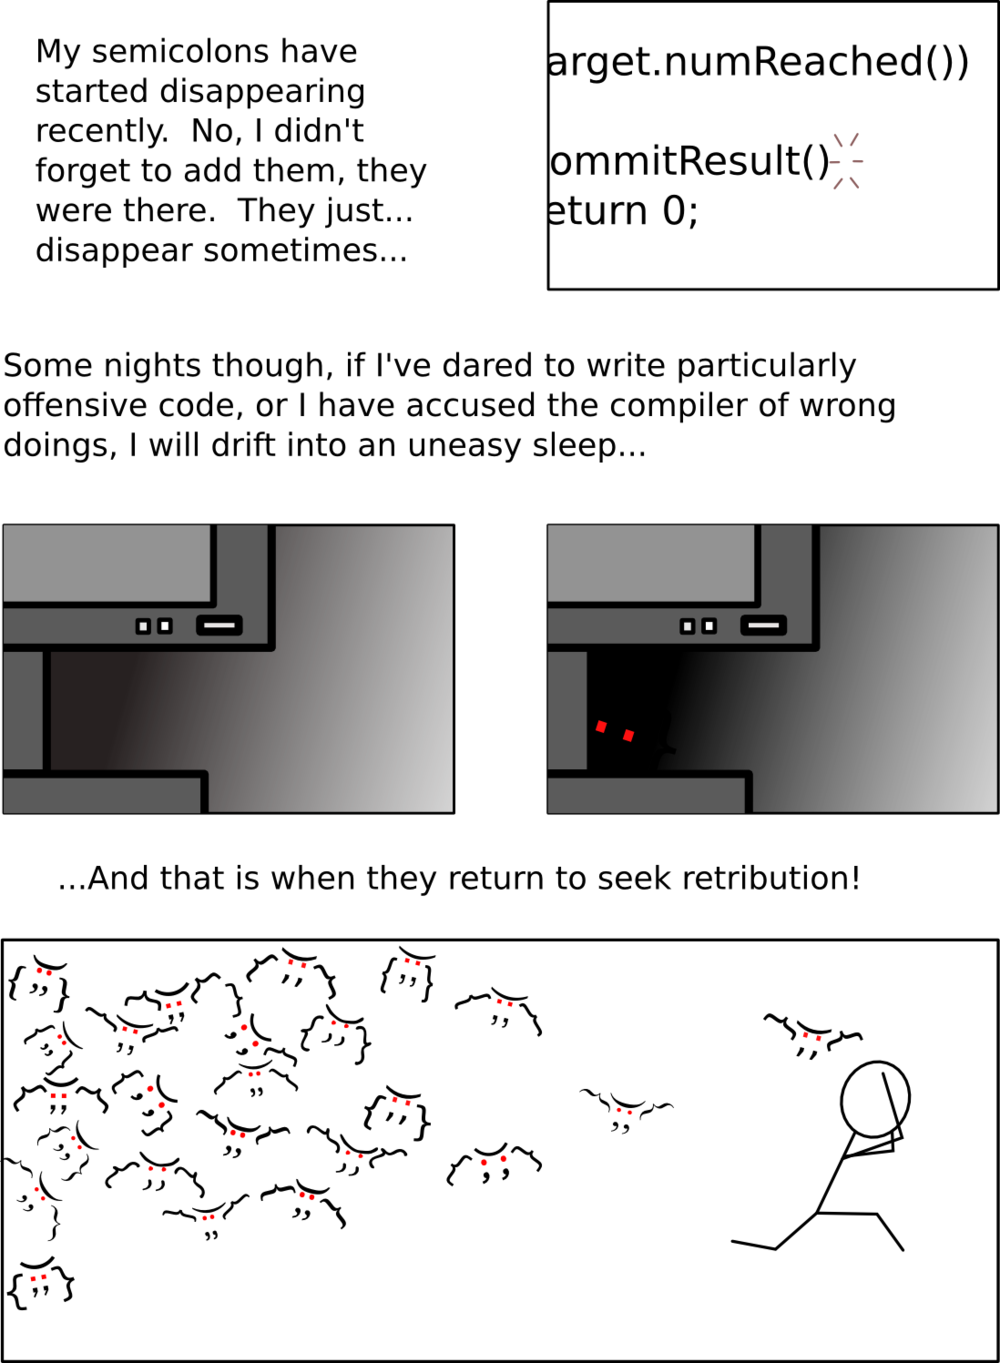 I haven't actually been chased by semicolons in my nightmares, but I /have/ been chased by template member functions...